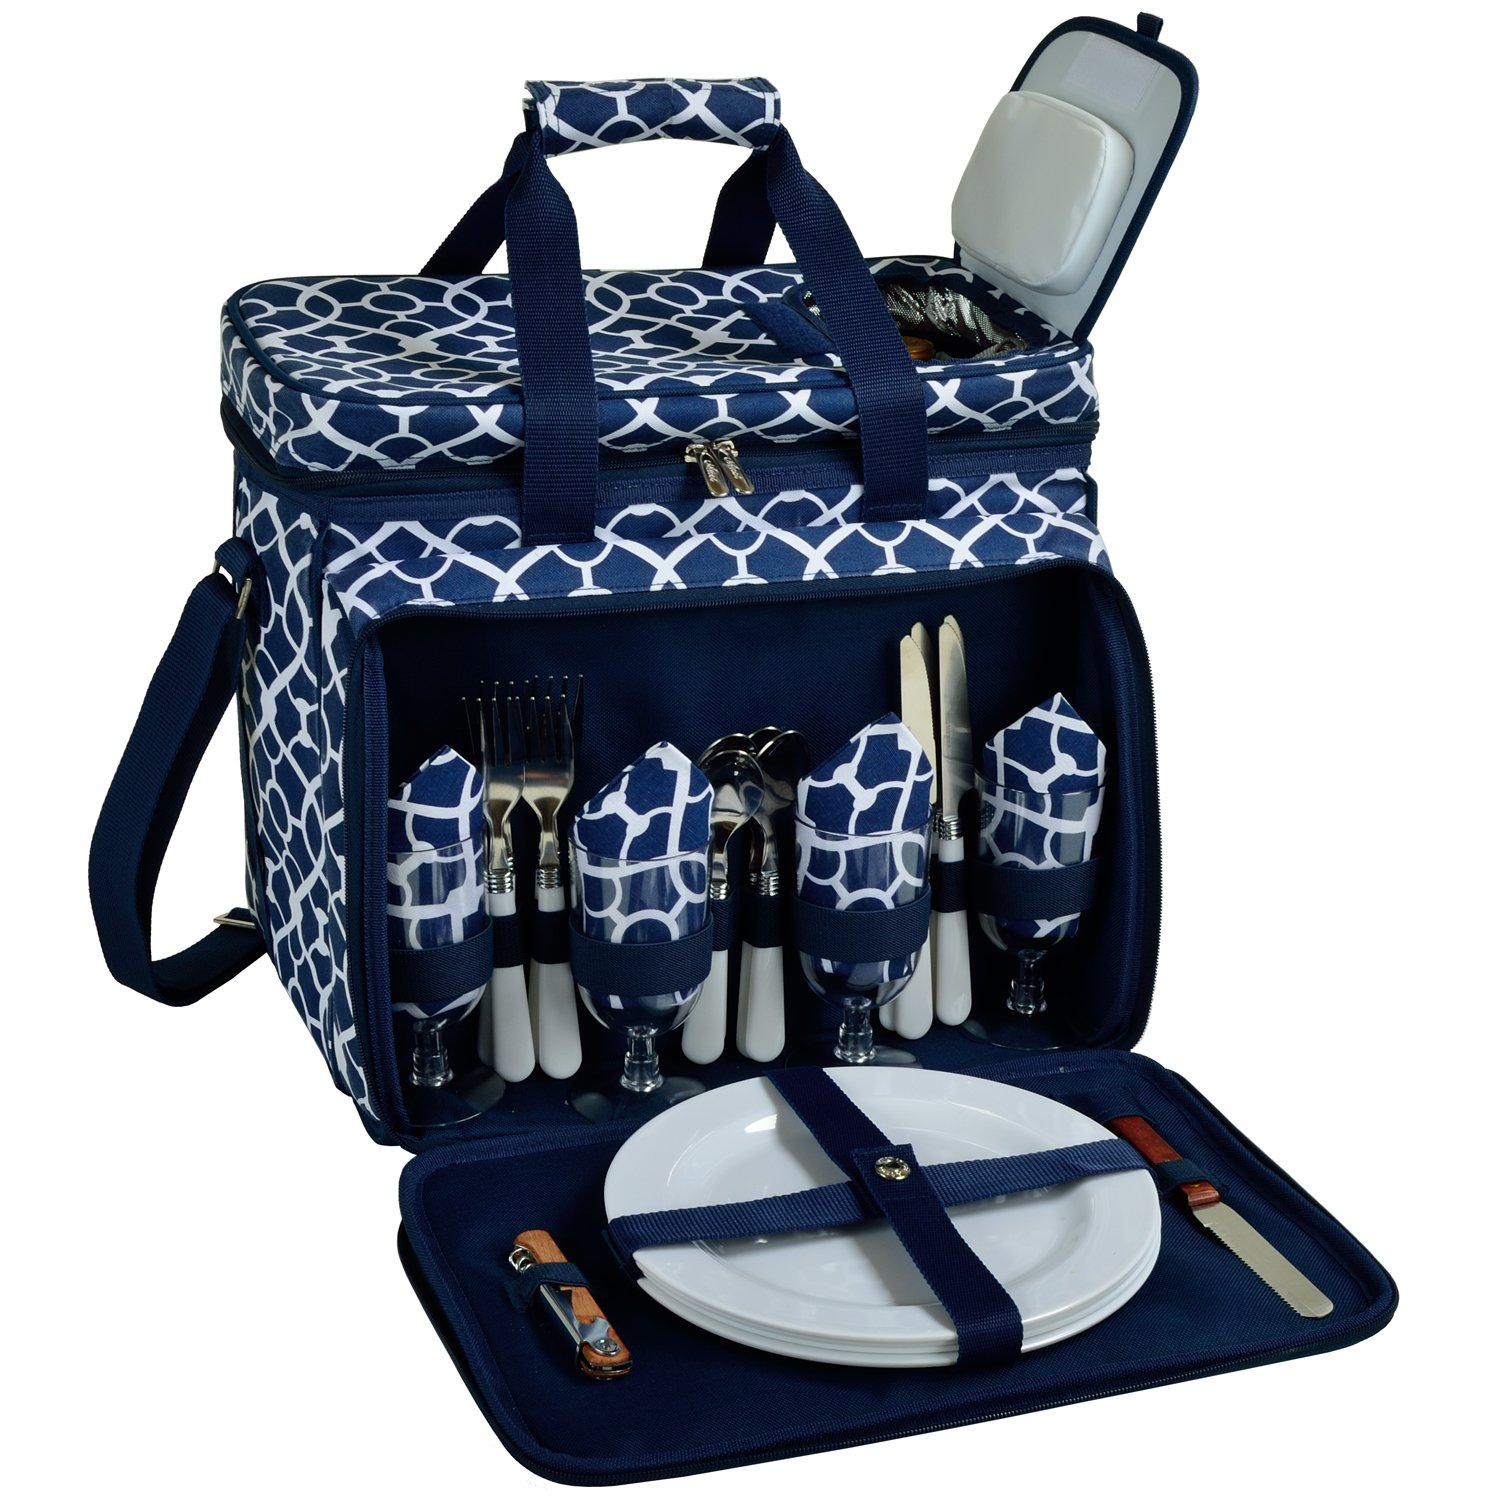 Picnic at Ascot Equipped Insulated Picnic Cooler with Service for 4 - Trellis Blue